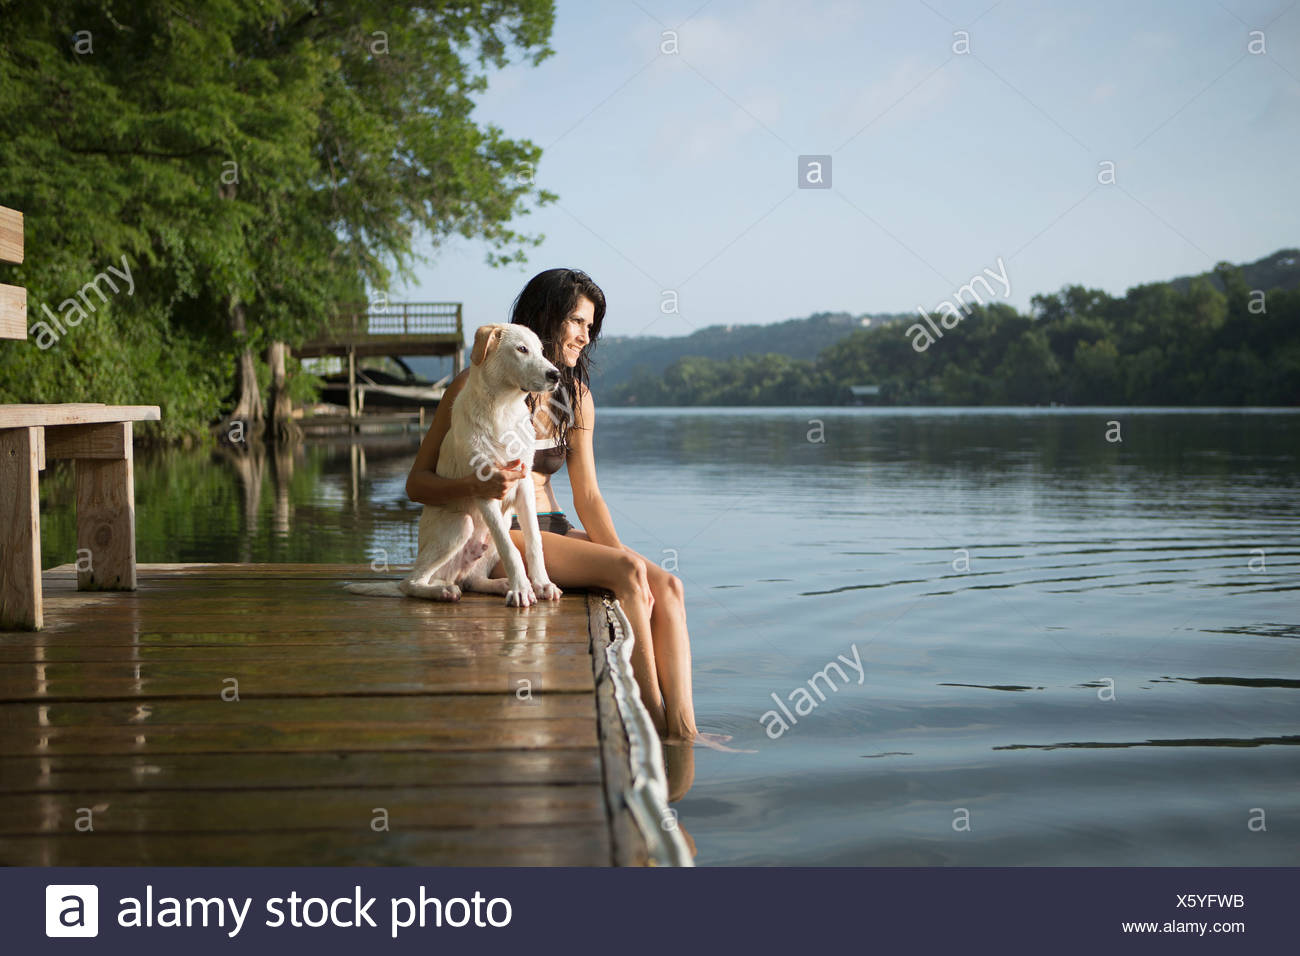 A woman with her arm around a small white dog on a jetty on a lake. Stock Photo